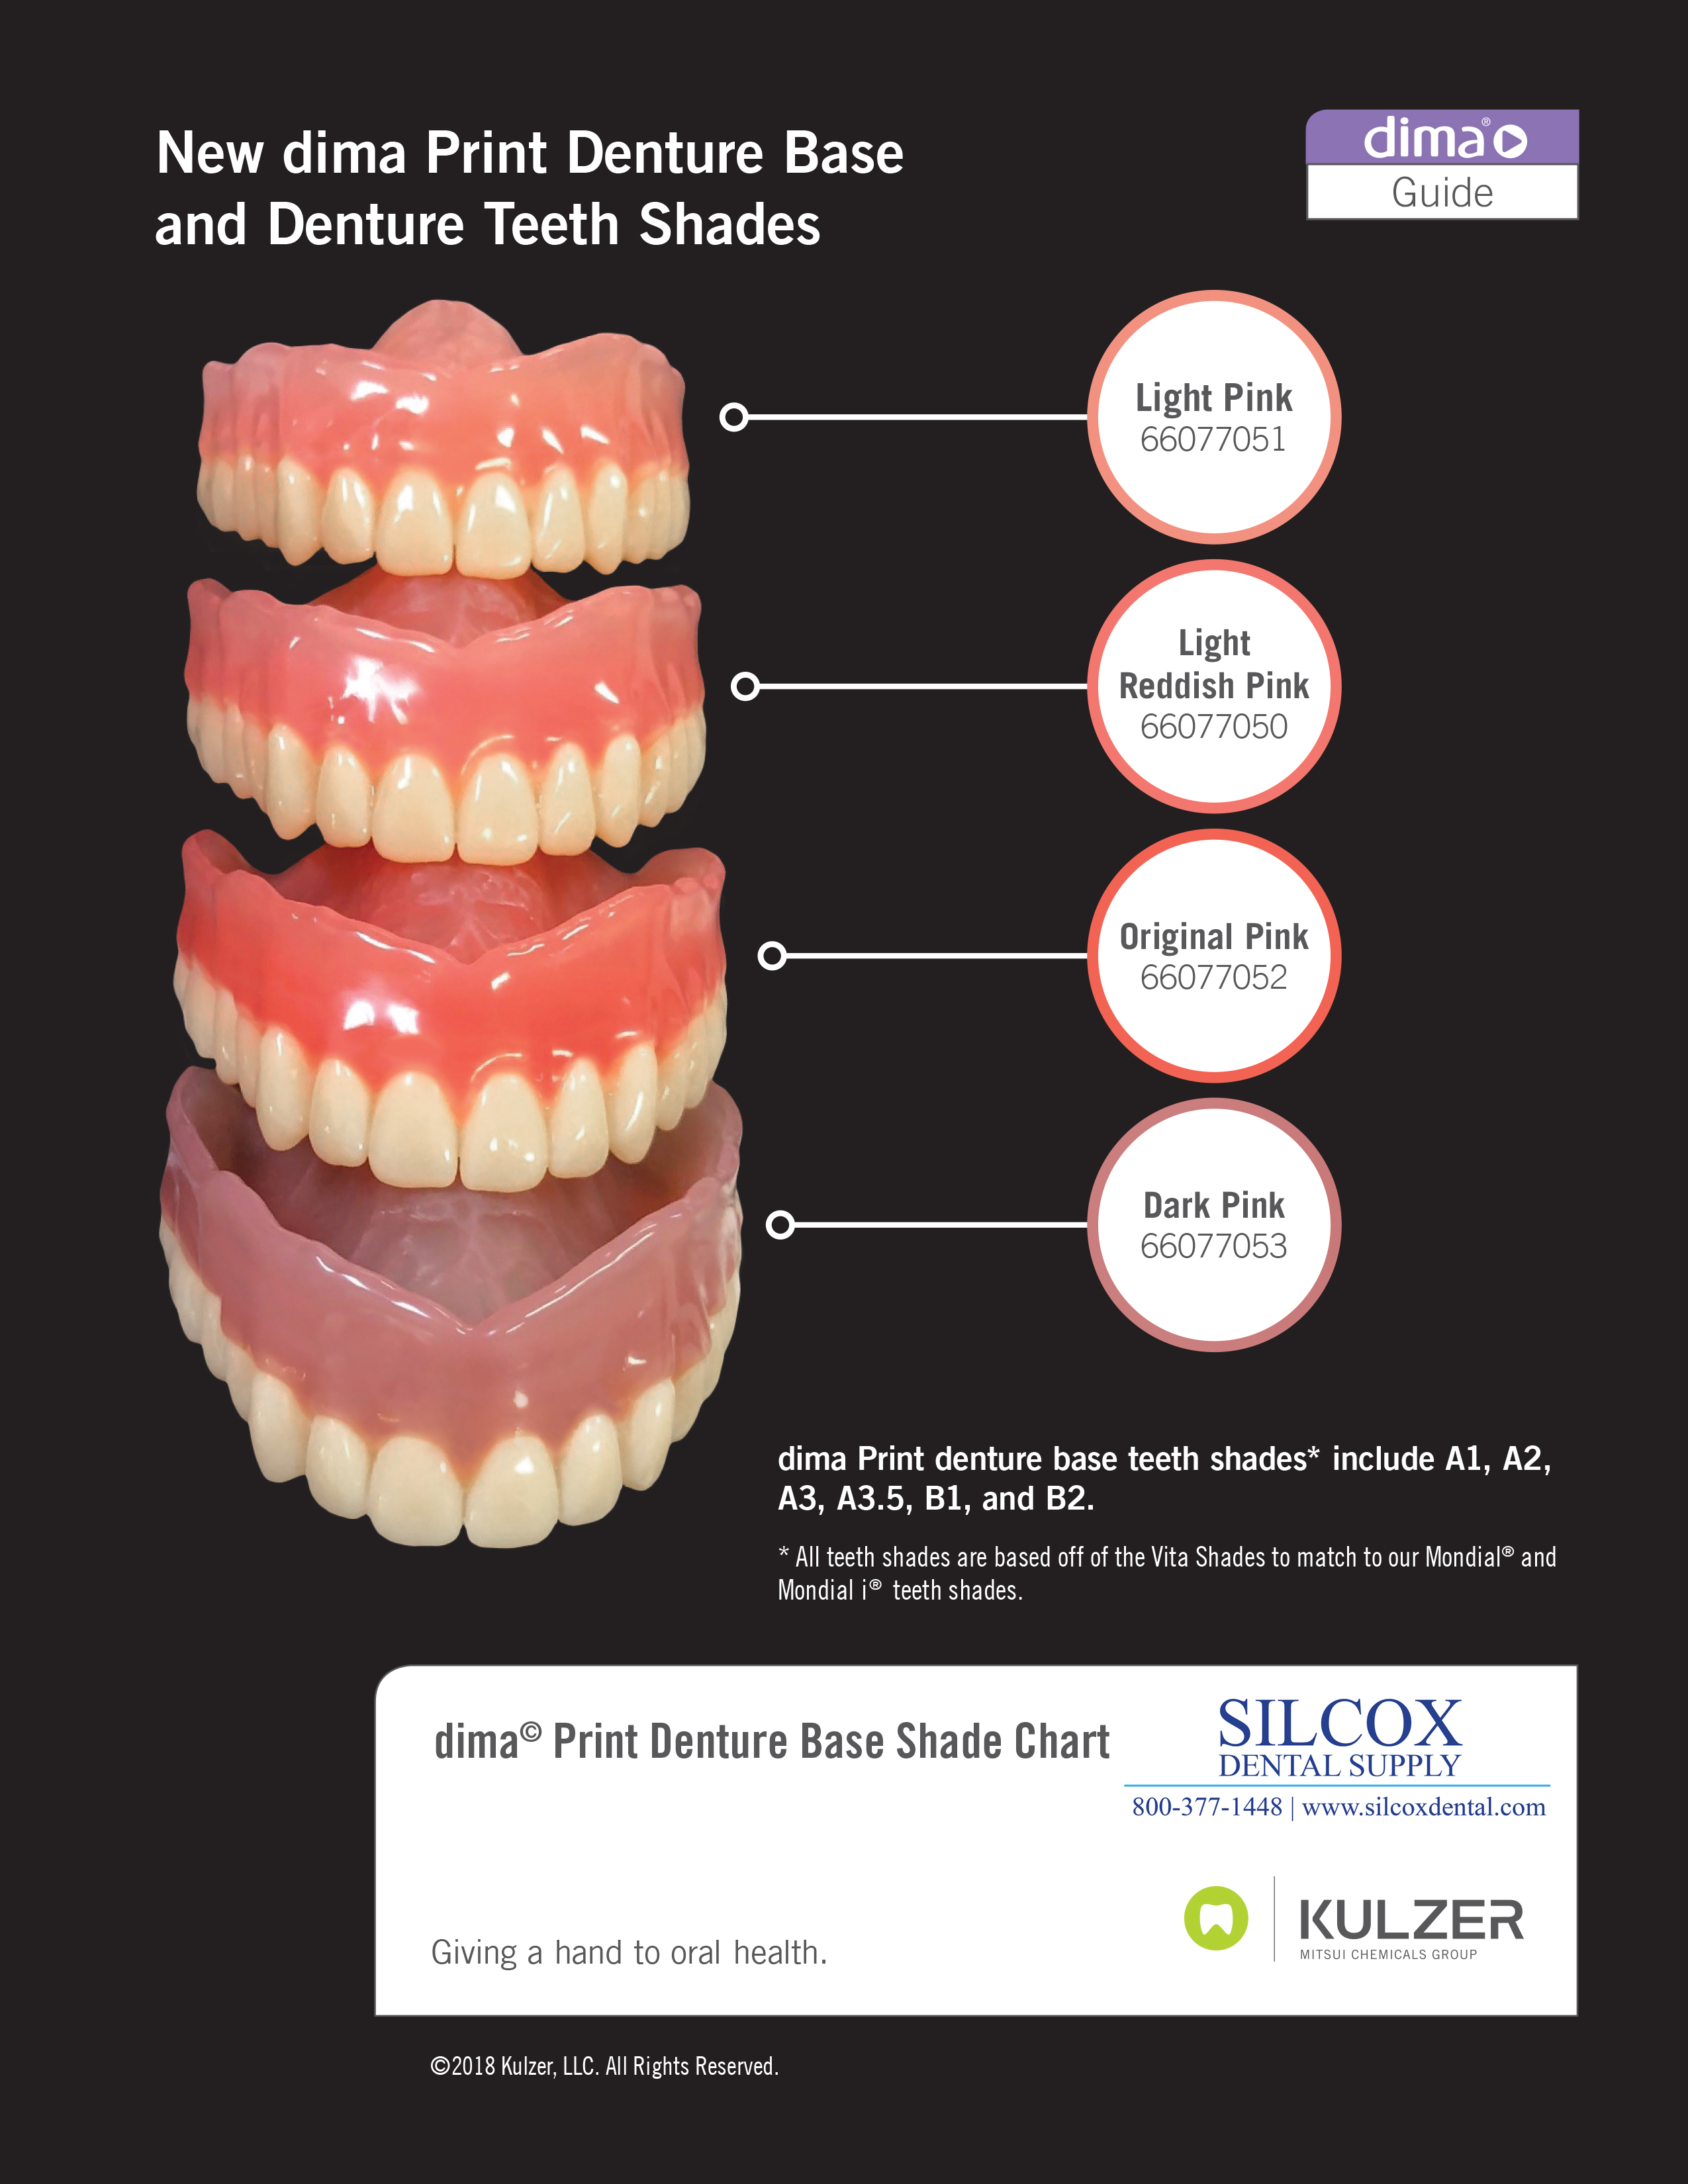 dima print denture base shade guide